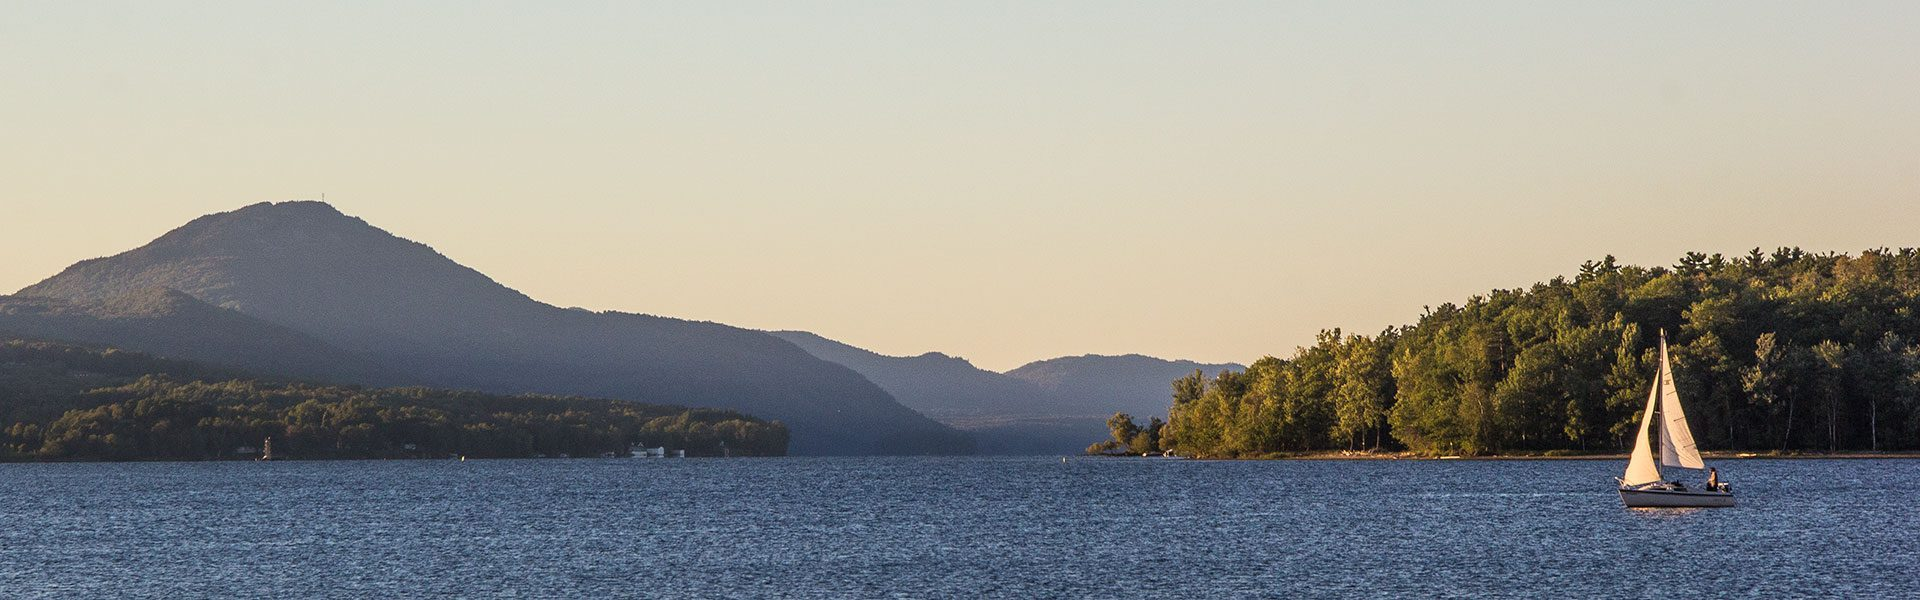 Lake Memphremagog header web